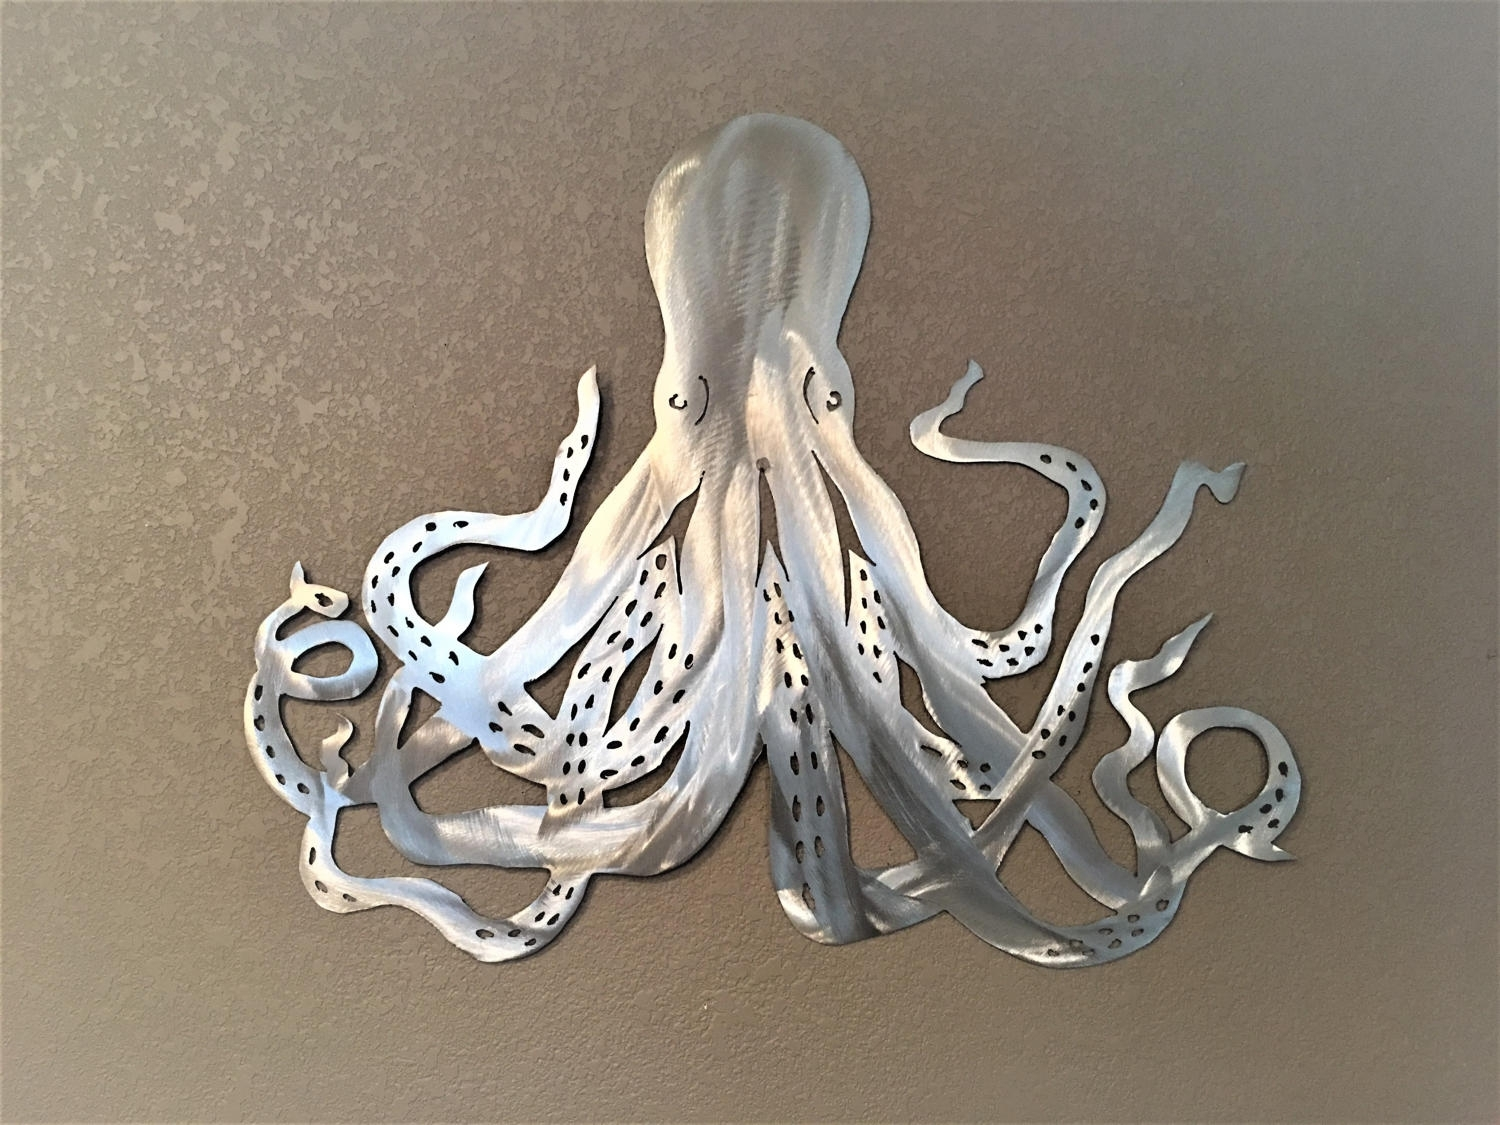 Octopus Metal Wall Art. Ocean Life, Saltwater Series. Octopus Intended For Best And Newest Octopus Wall Art (Gallery 7 of 20)